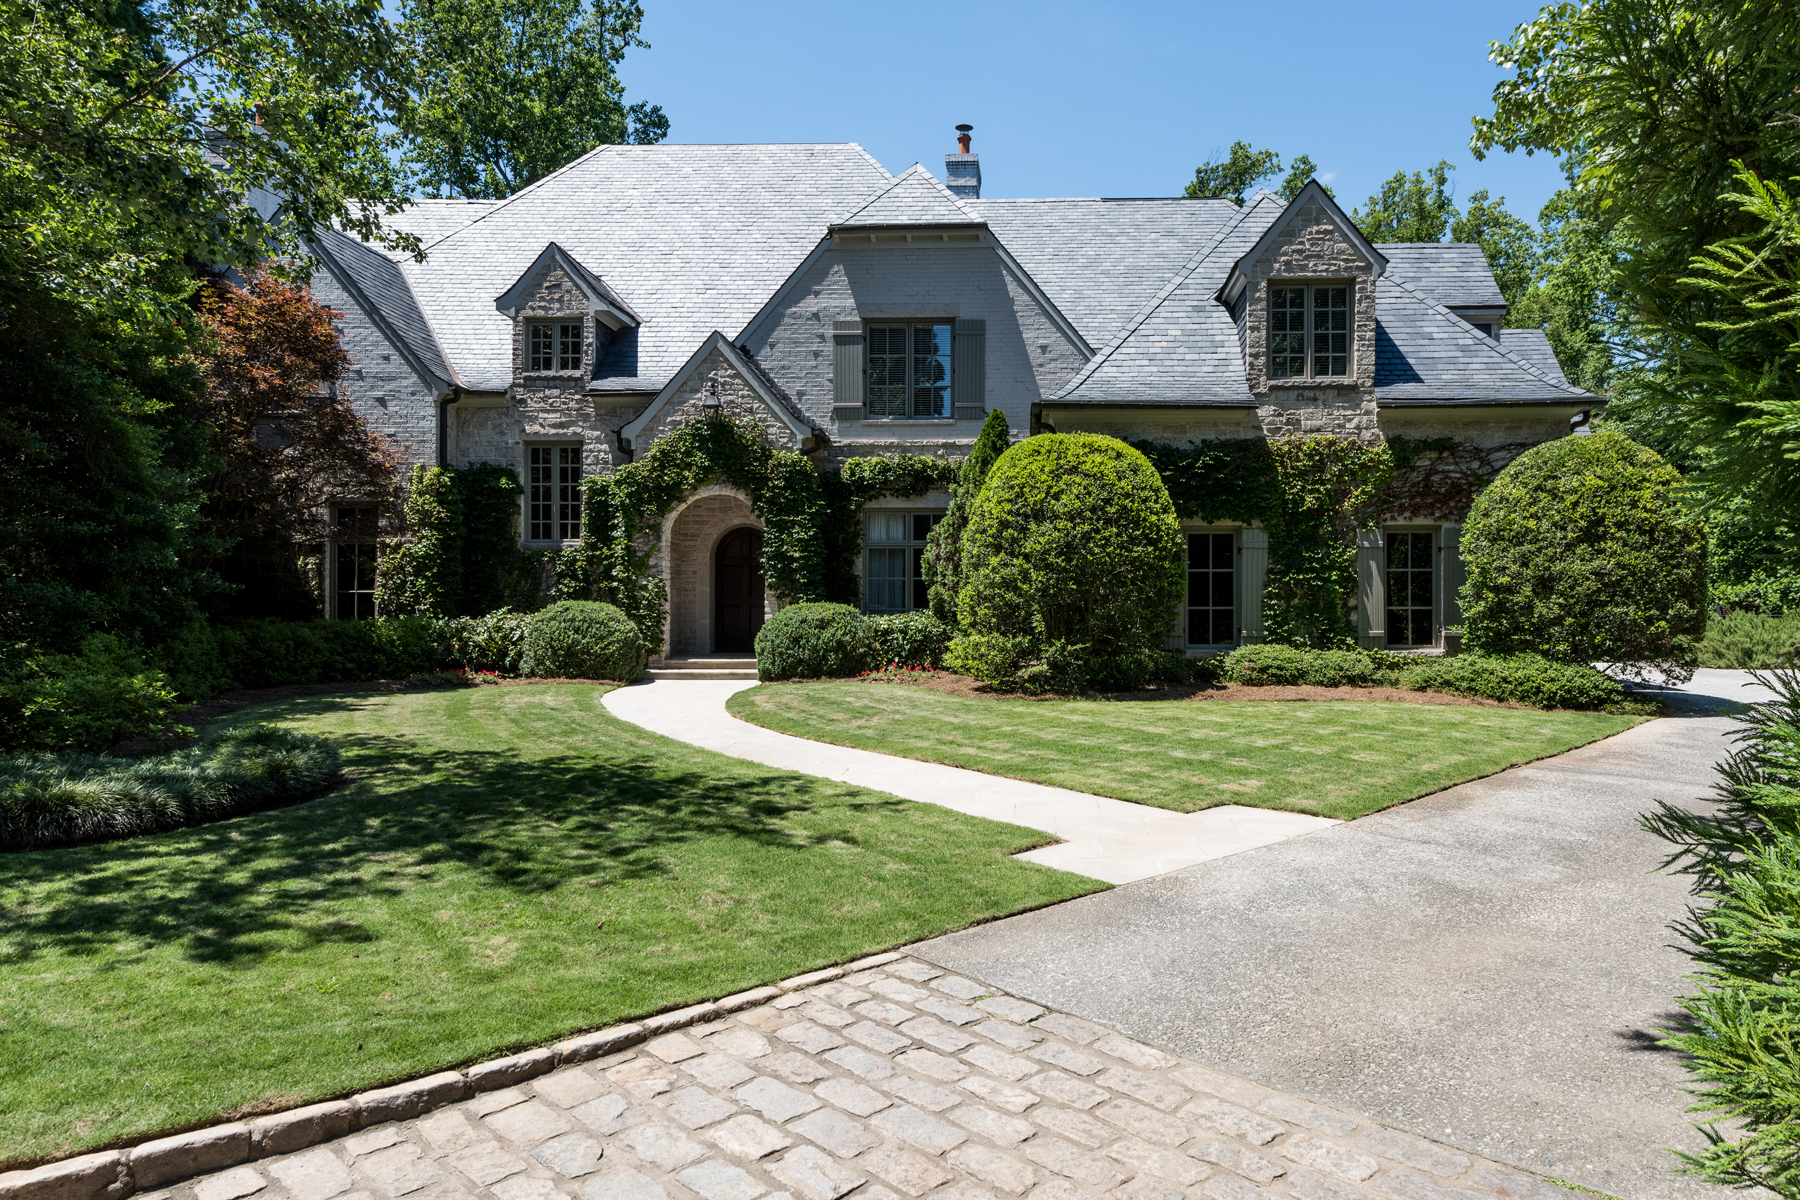 Elegant Stone And Brick Beauty In Buckhead's Prestigious Gated 14 Home Community 675 W Paces Ferry Road NW House #9 Atlanta, Georgia 30327 United States